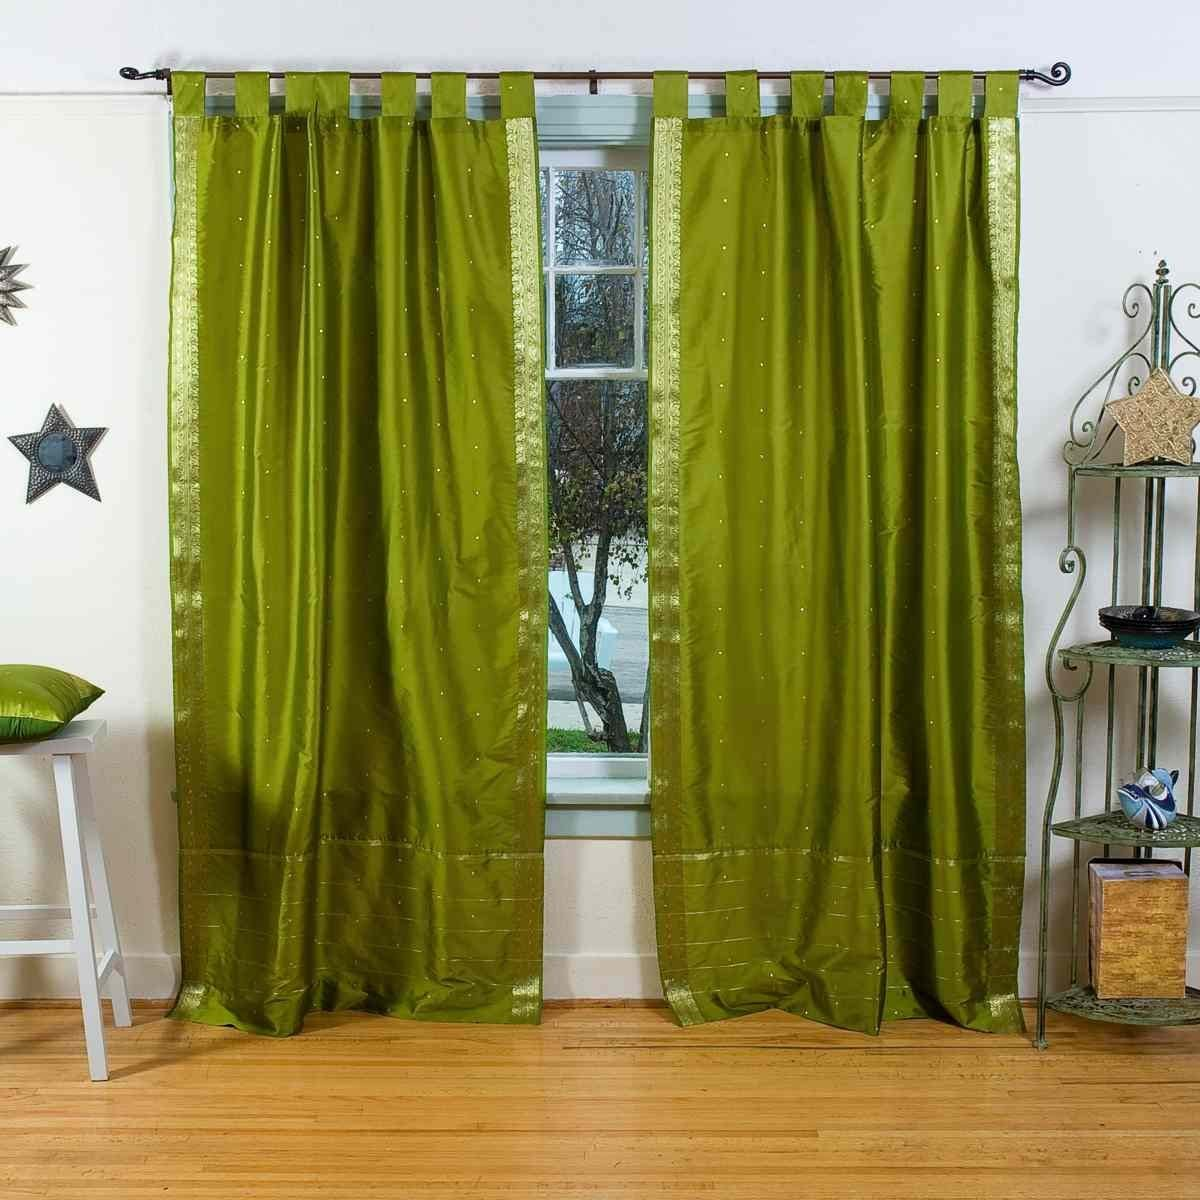 Indian Selections Lined-Olive Green Tab Top Sheer Sari Curtain Drape – 80W x 120L – Pair